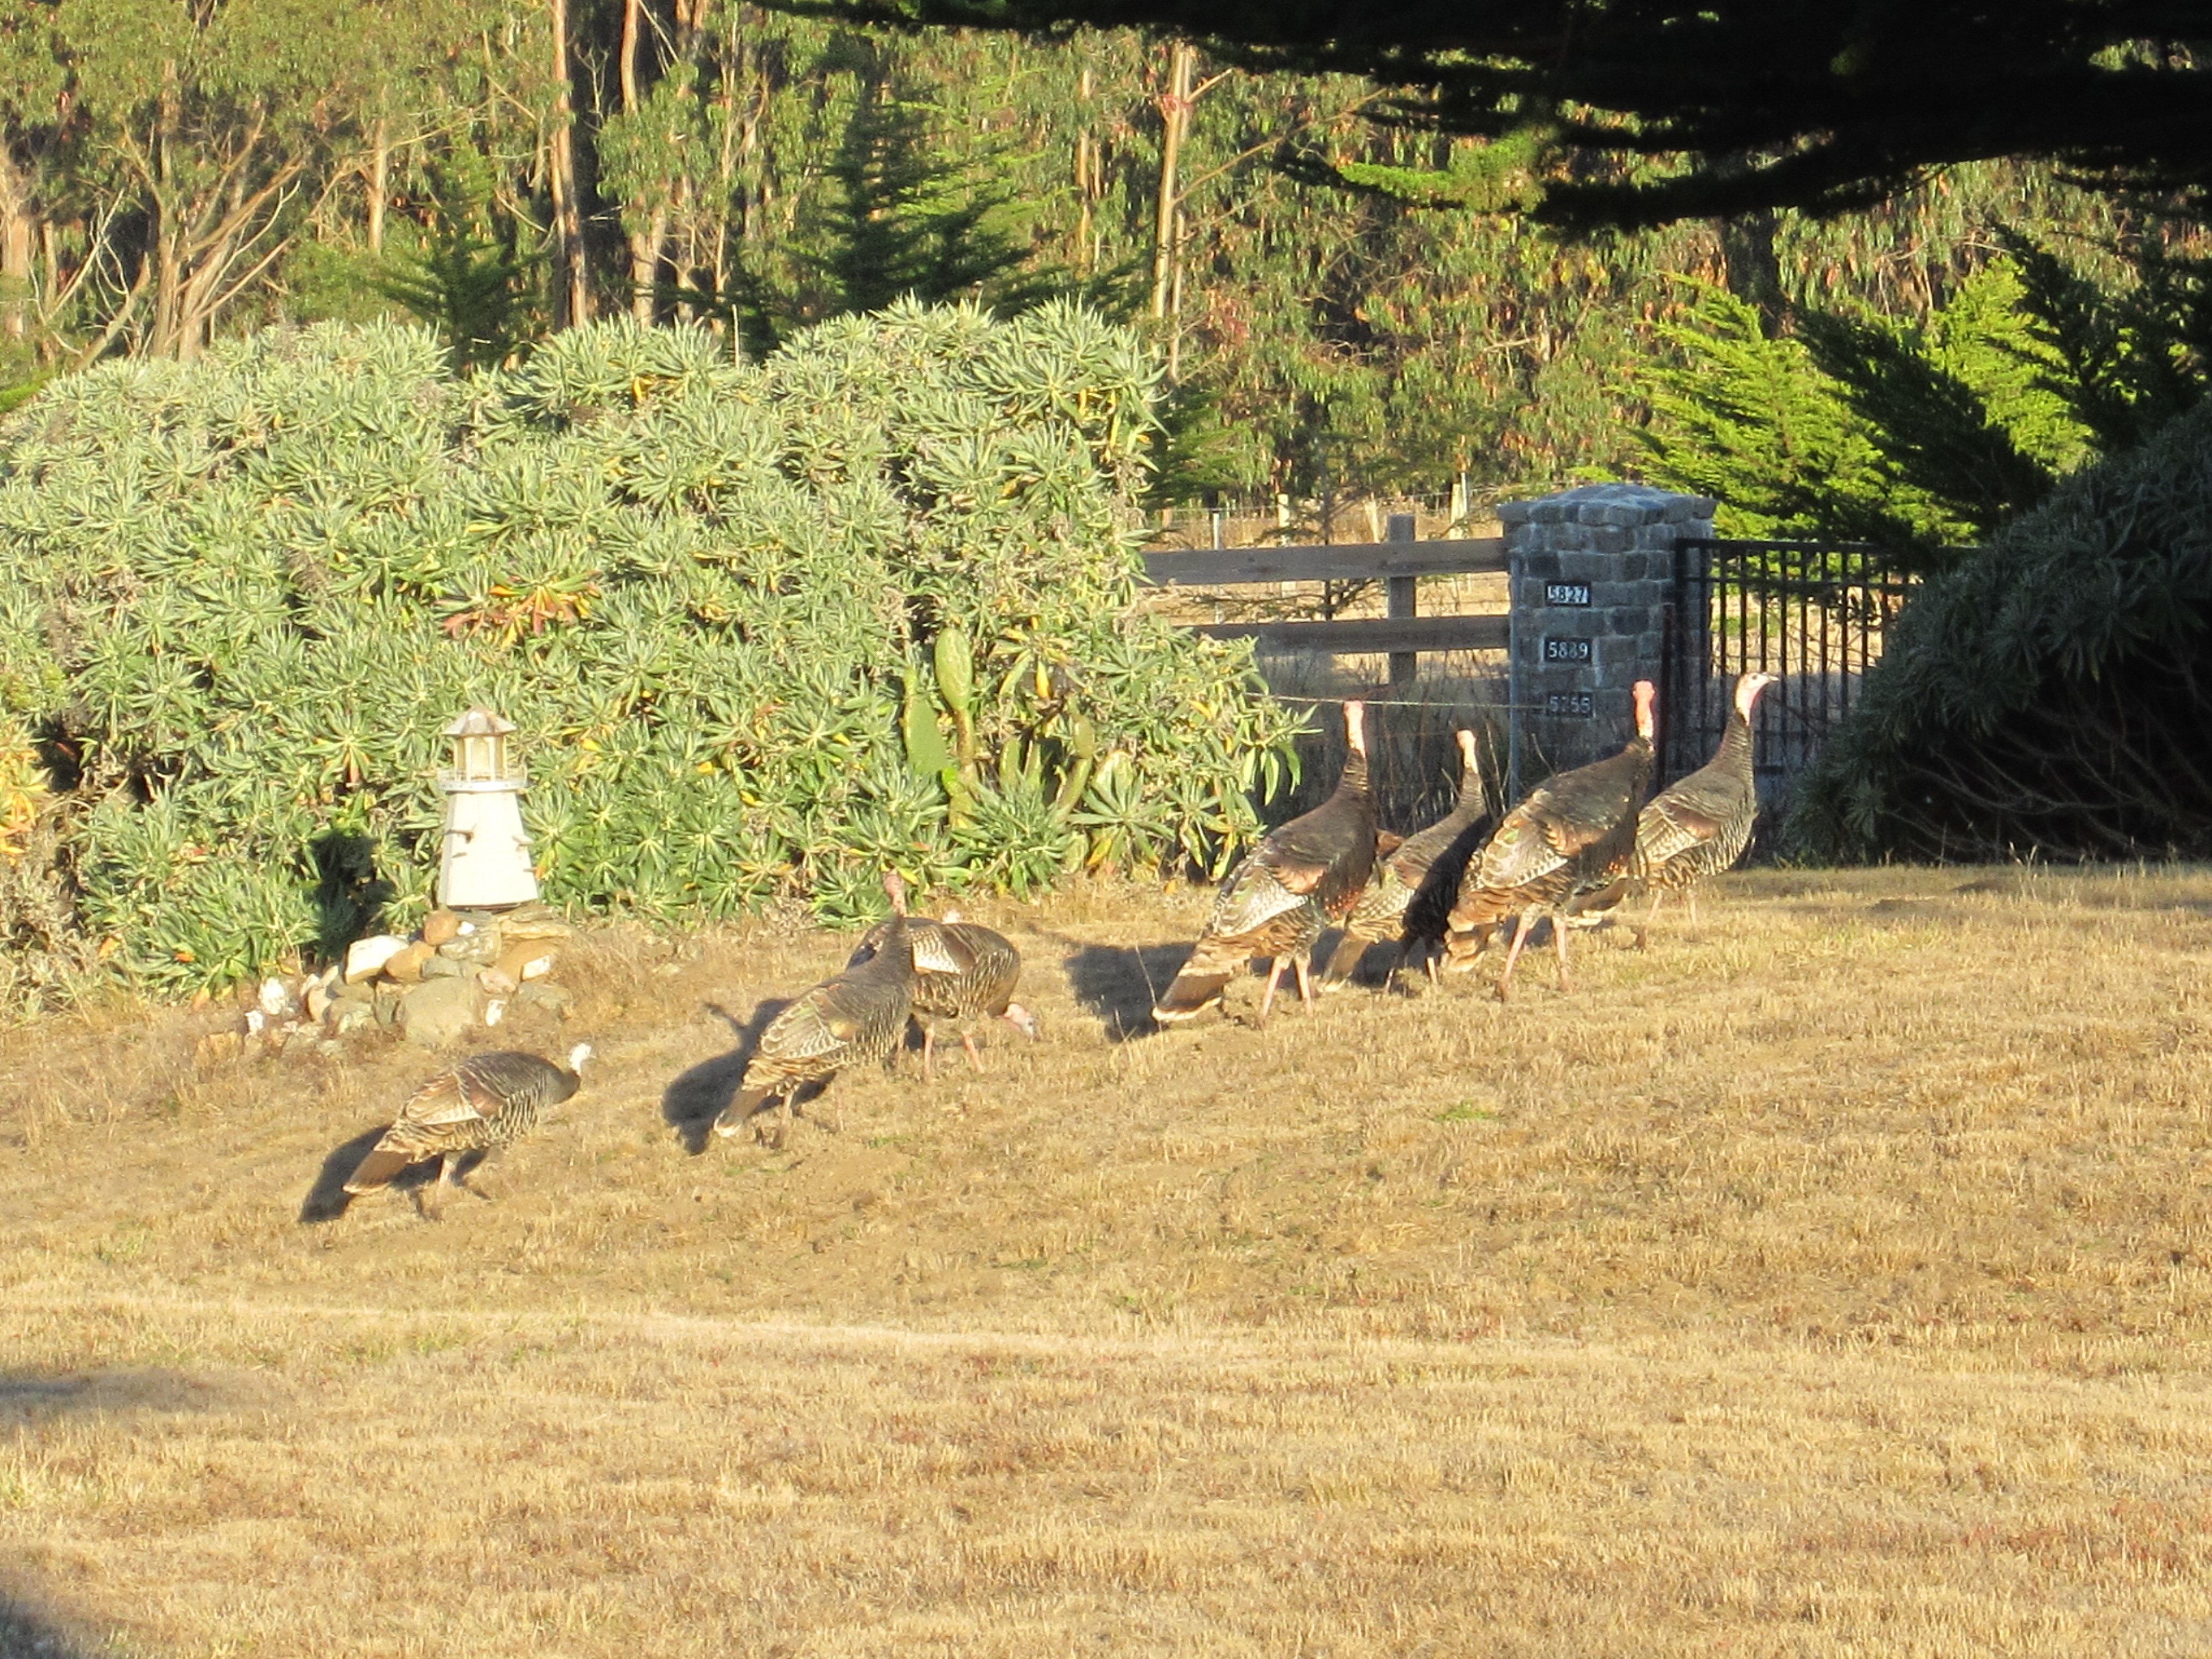 Wild turkeys at our Airbnb accomoations in Bodega Bay.